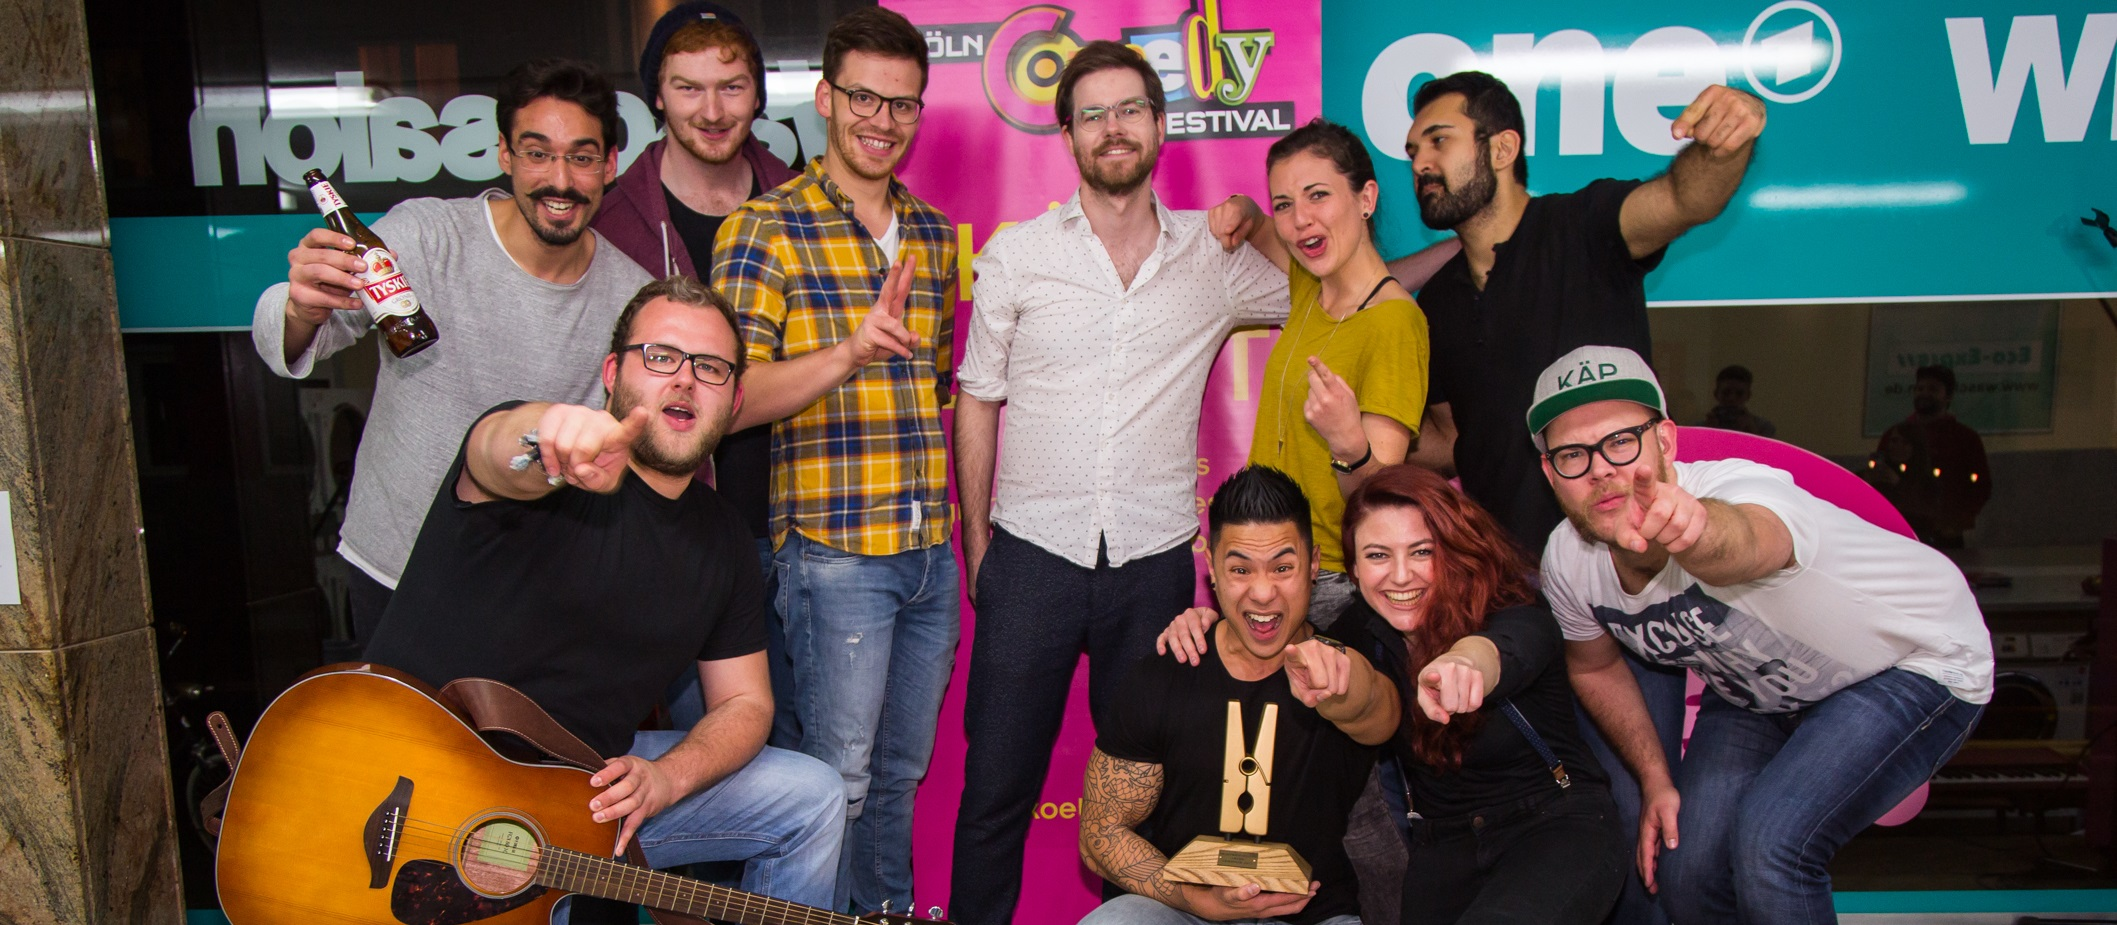 Der NightWash Talent Award